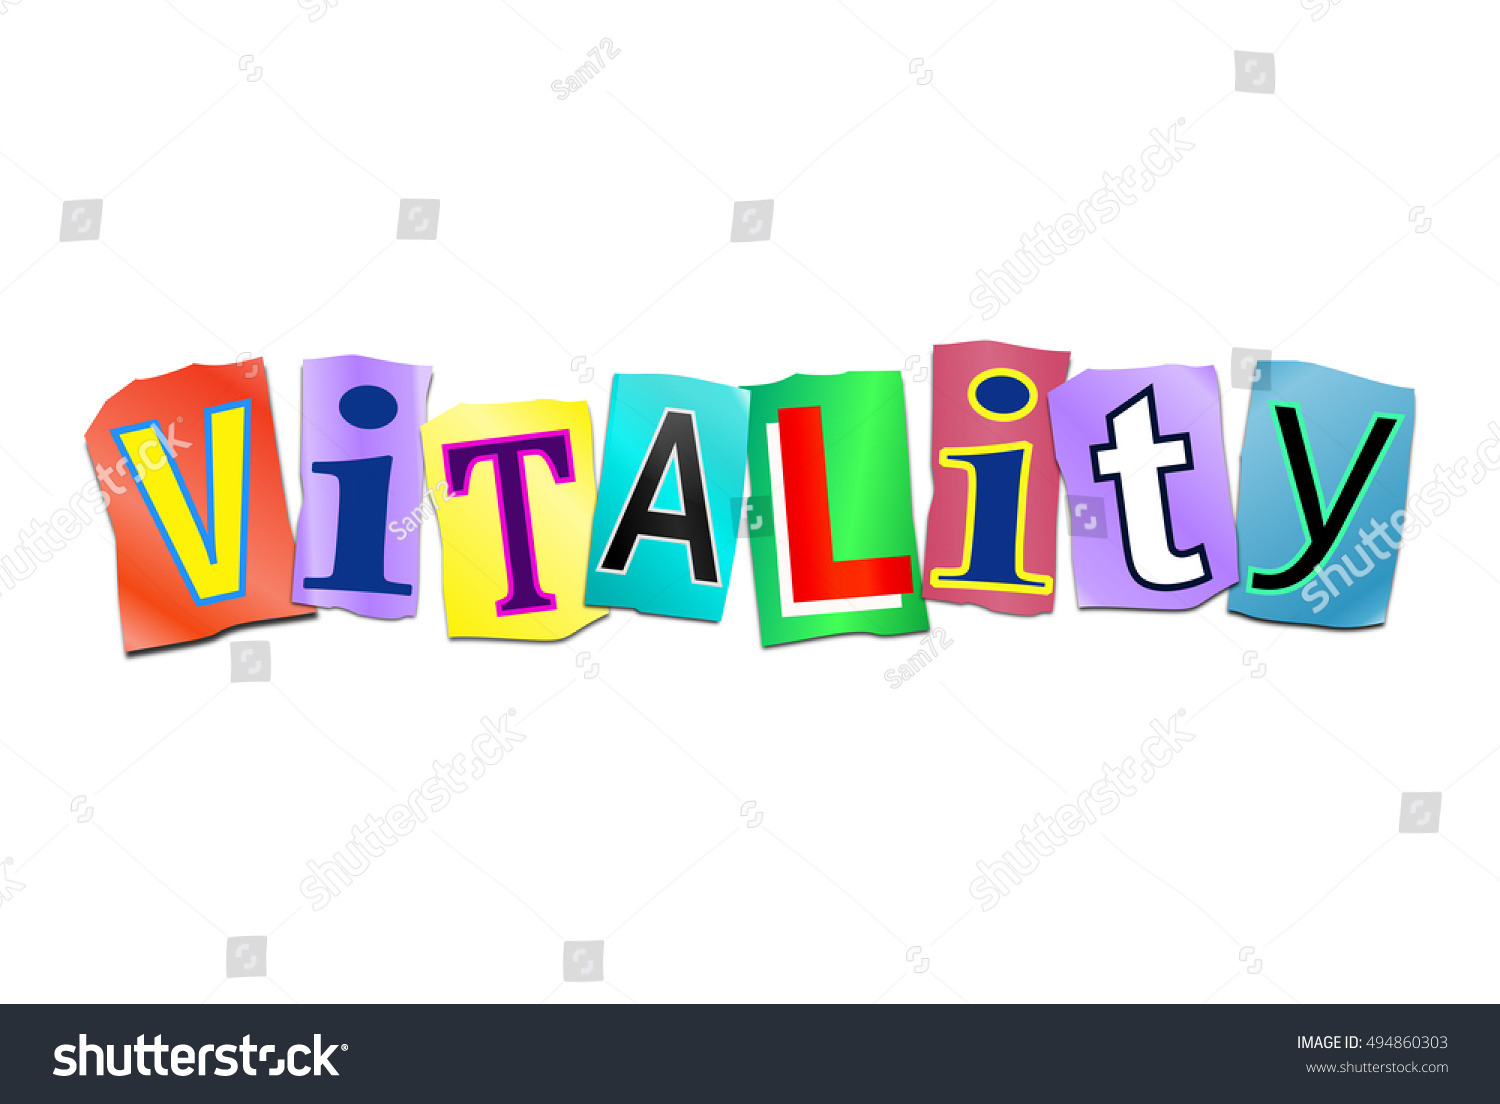 Illustration Depicting Set Cut Out Printed Stock Illustration 494860303 - Shutterstock